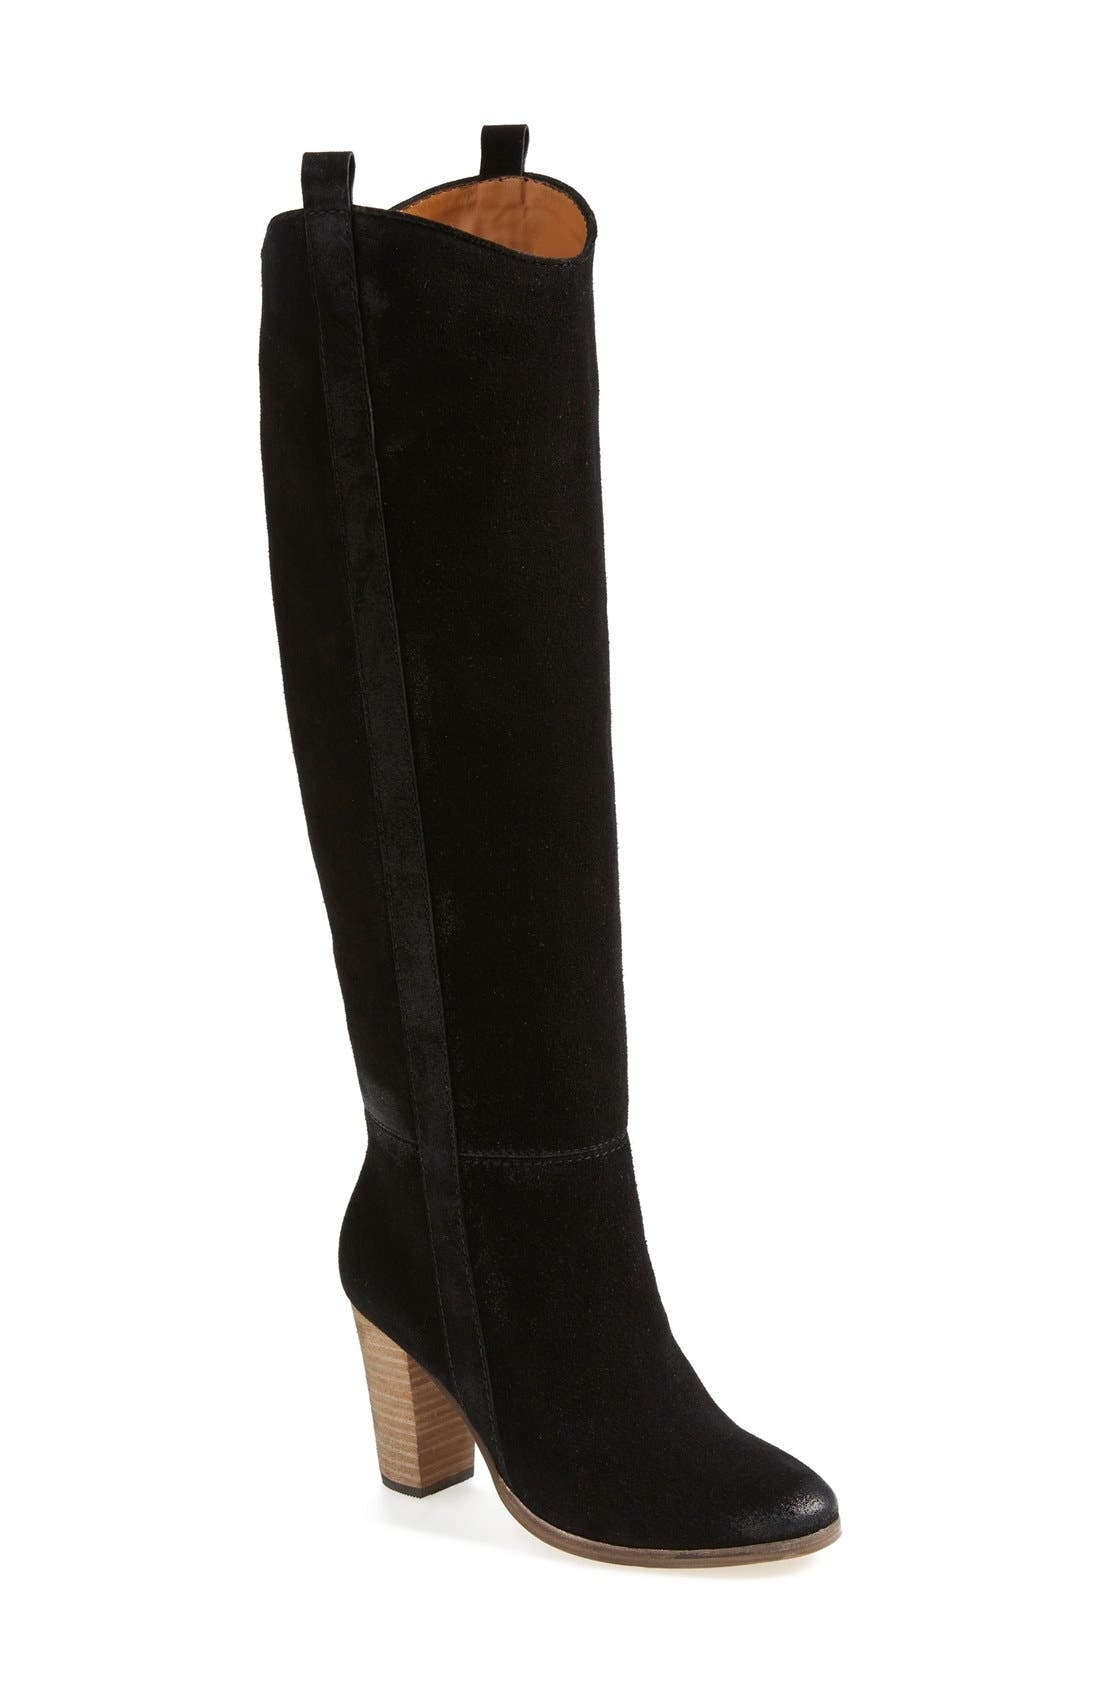 Alternate Image 1 Selected - DV by Dolce Vita 'Myste' Boot (Women)